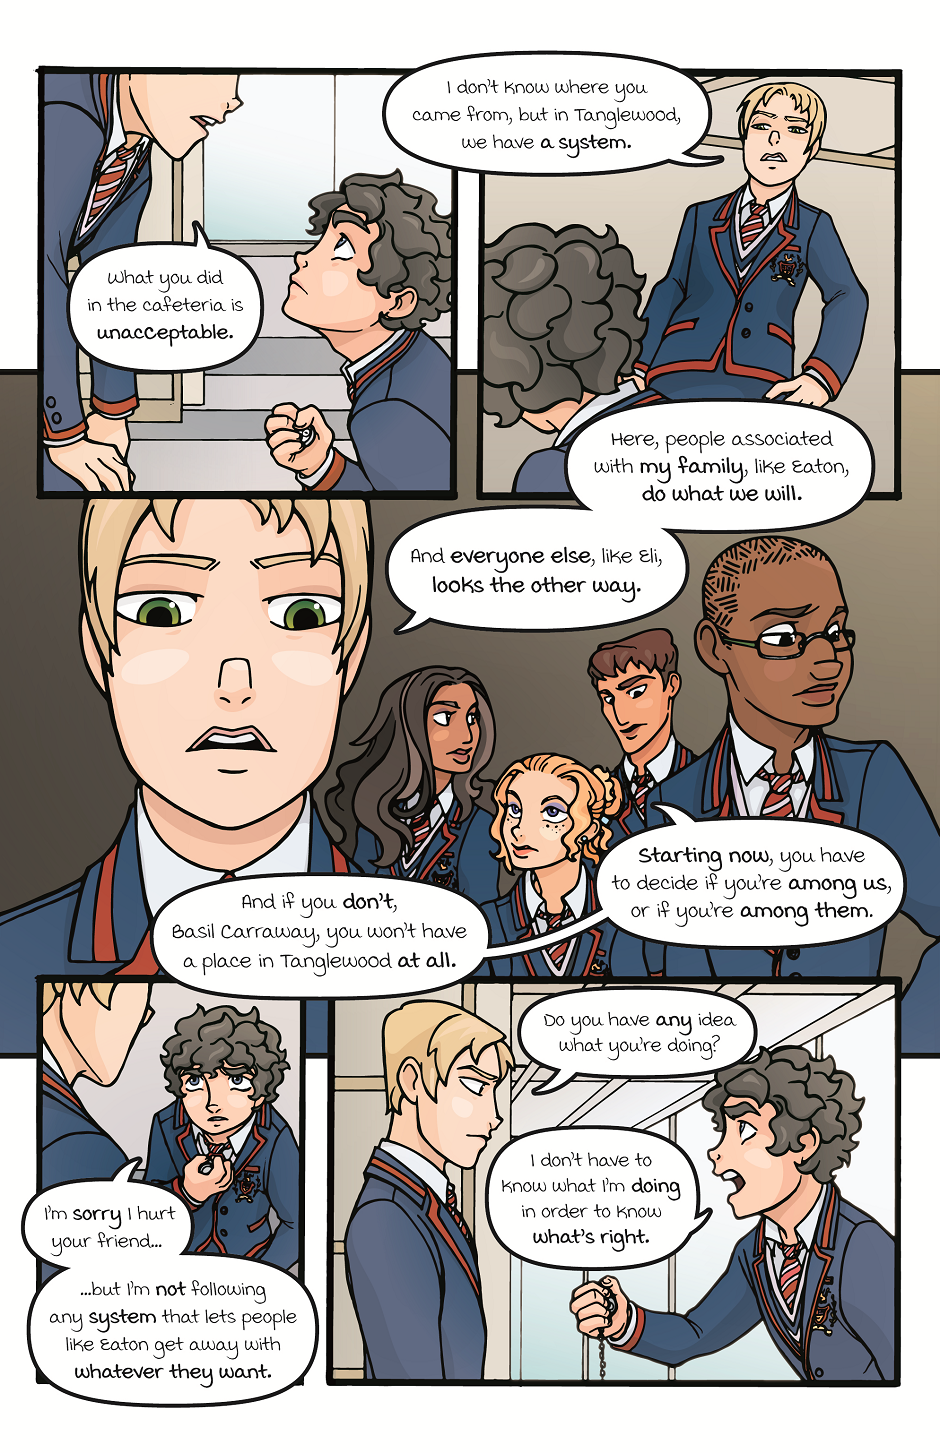 MBB_Ch02-P13_forSS.png